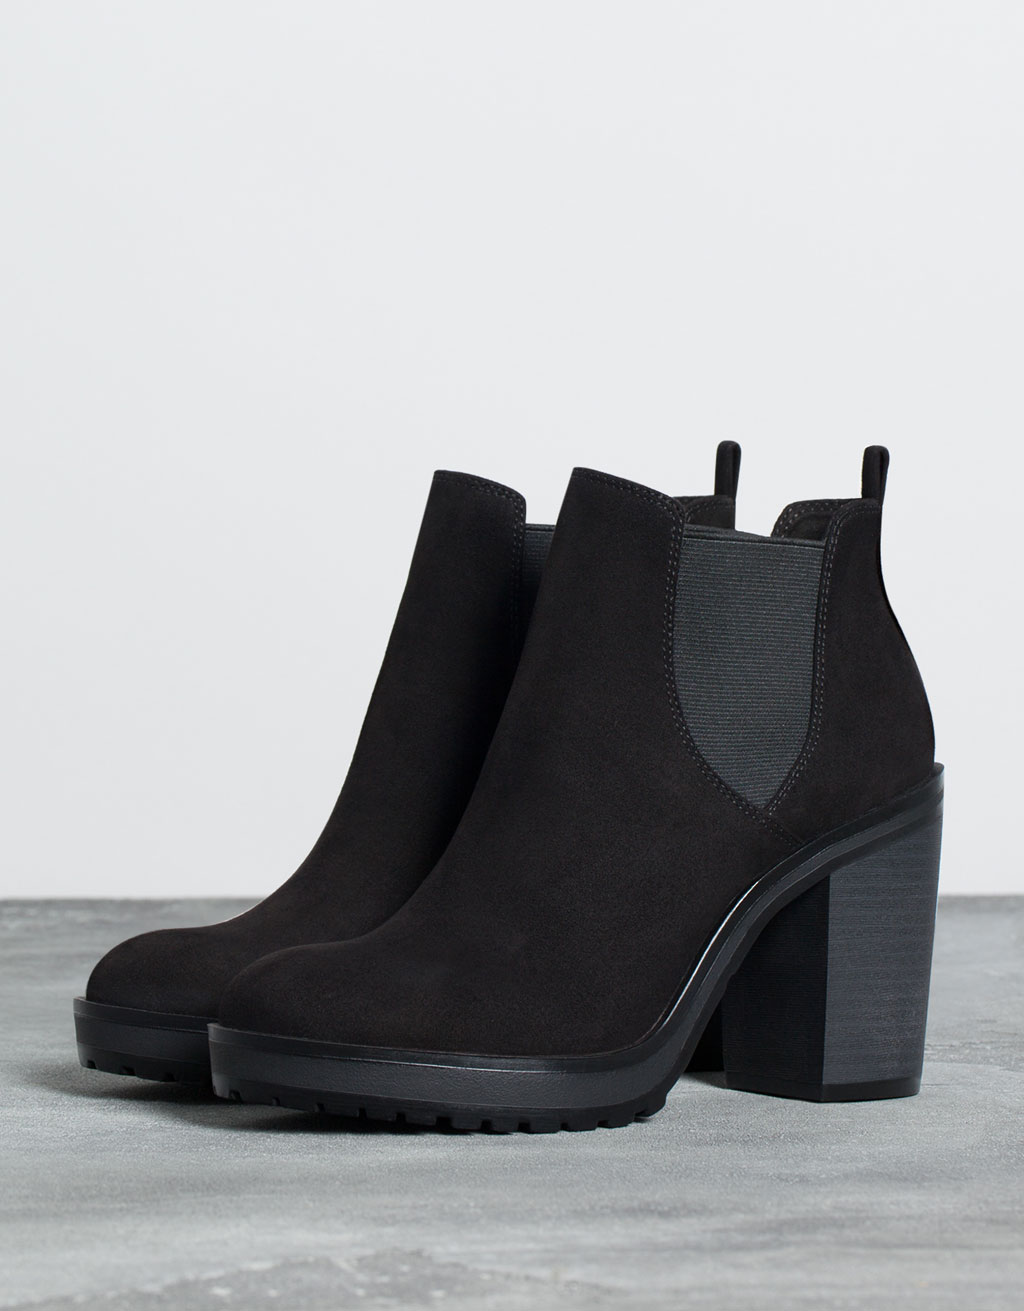 Mexico Chair Schwarz Bershka Elastic Heeled Ankle Boot Boots And Ankle Boots